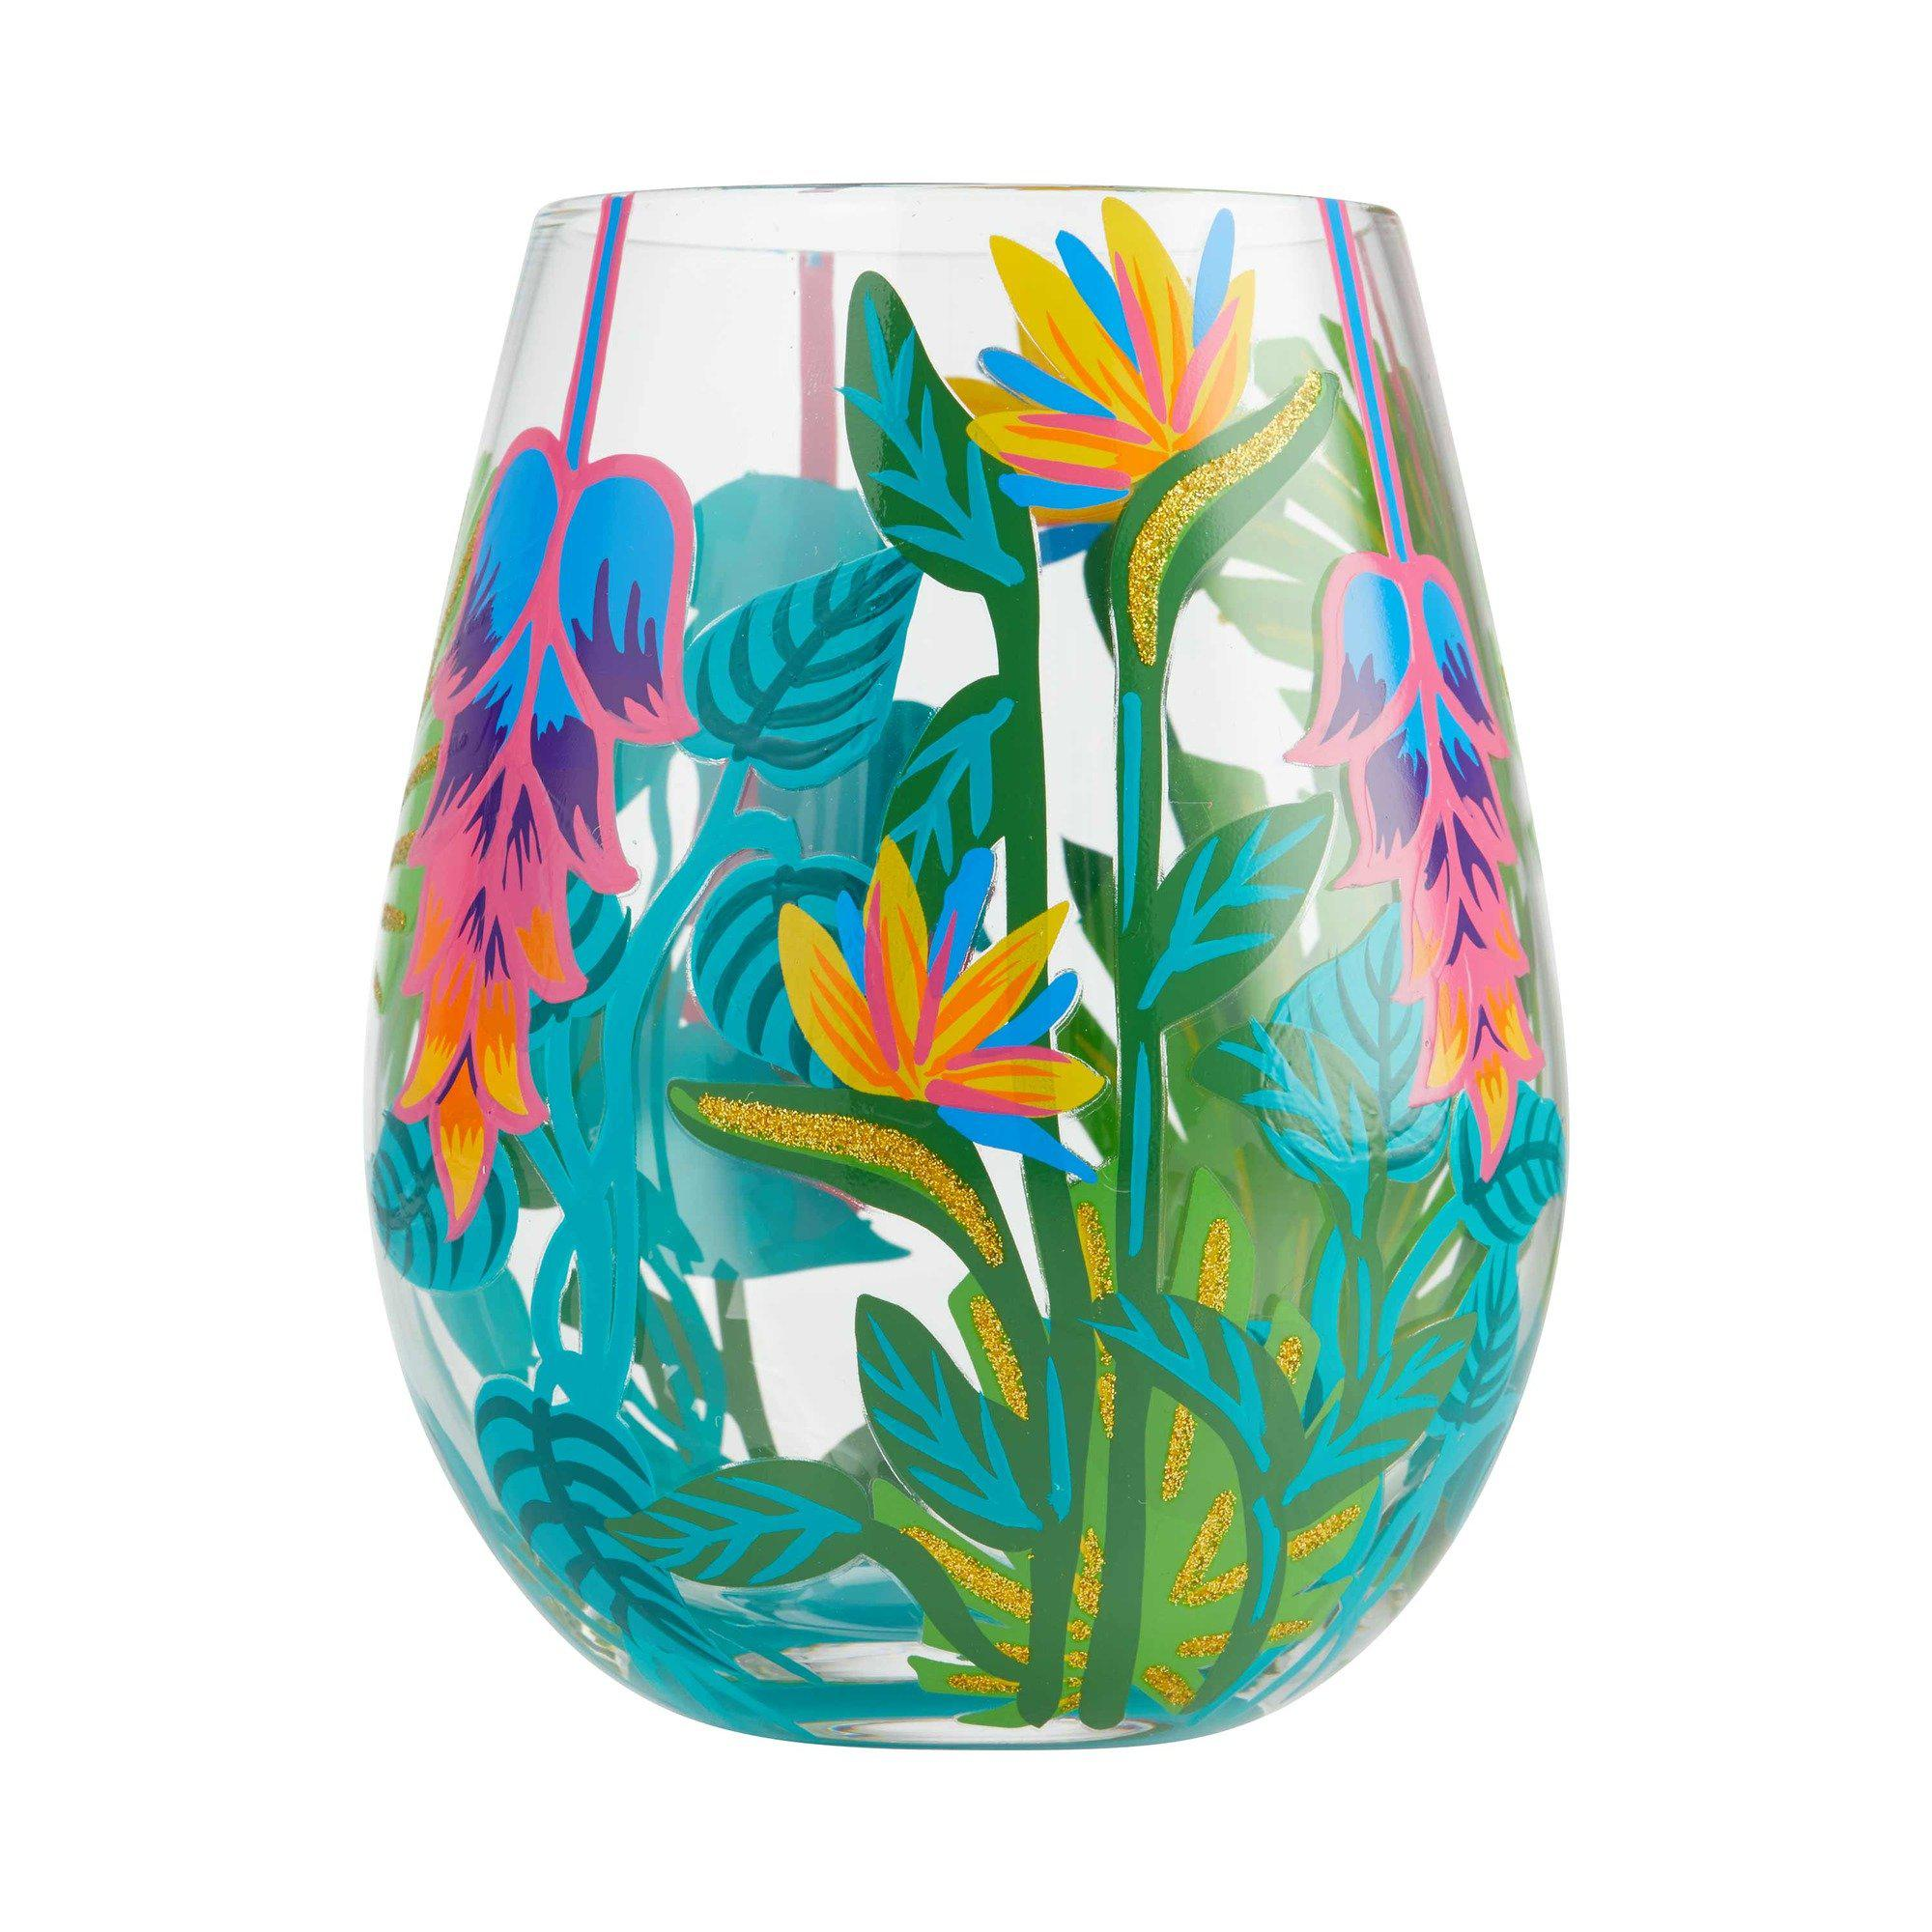 Tropical Vibes Stemless Wine Glass by Lolita®-Stemless Wine Glass-Designs by Lolita® (Enesco)-Top Notch Gift Shop